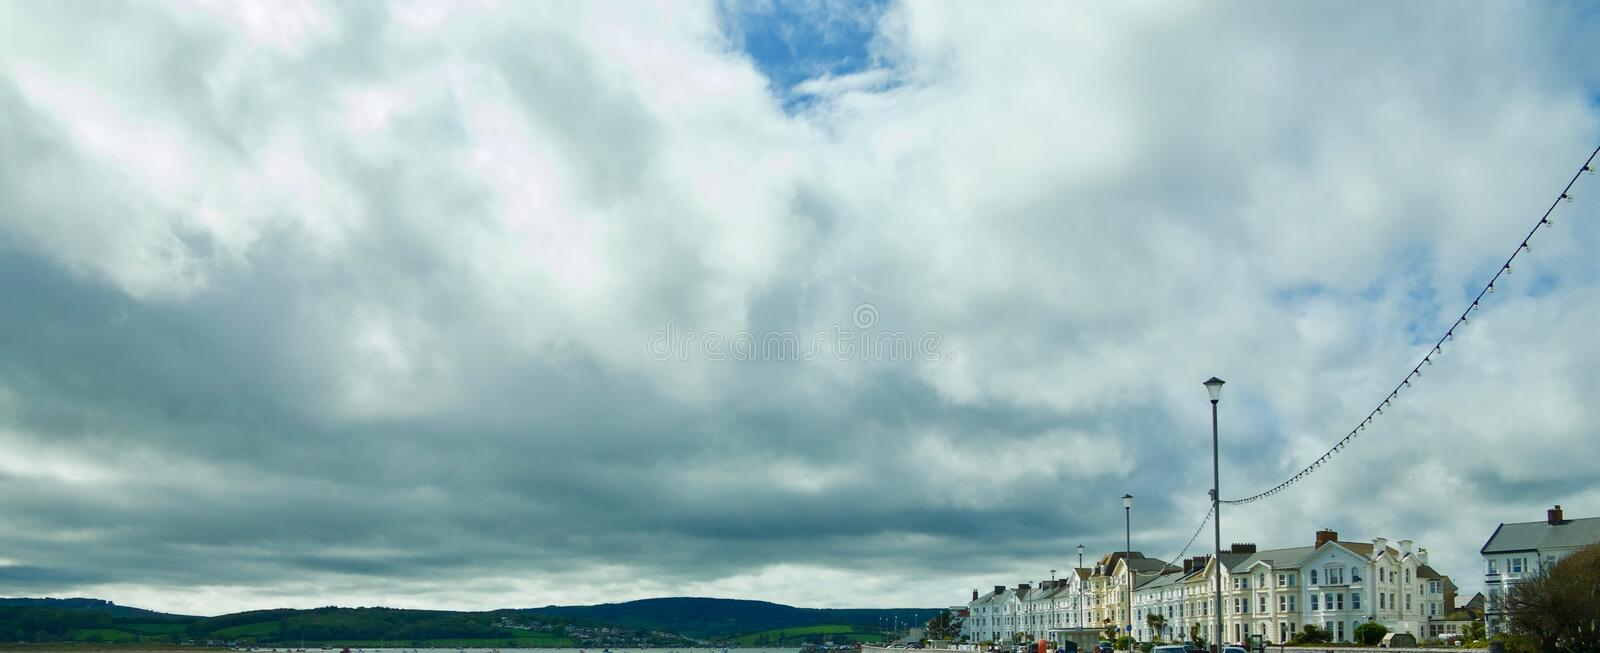 Clouds over Exmouth. Scenes of Devon Exmouth Devon England united kingdom royalty free stock photography